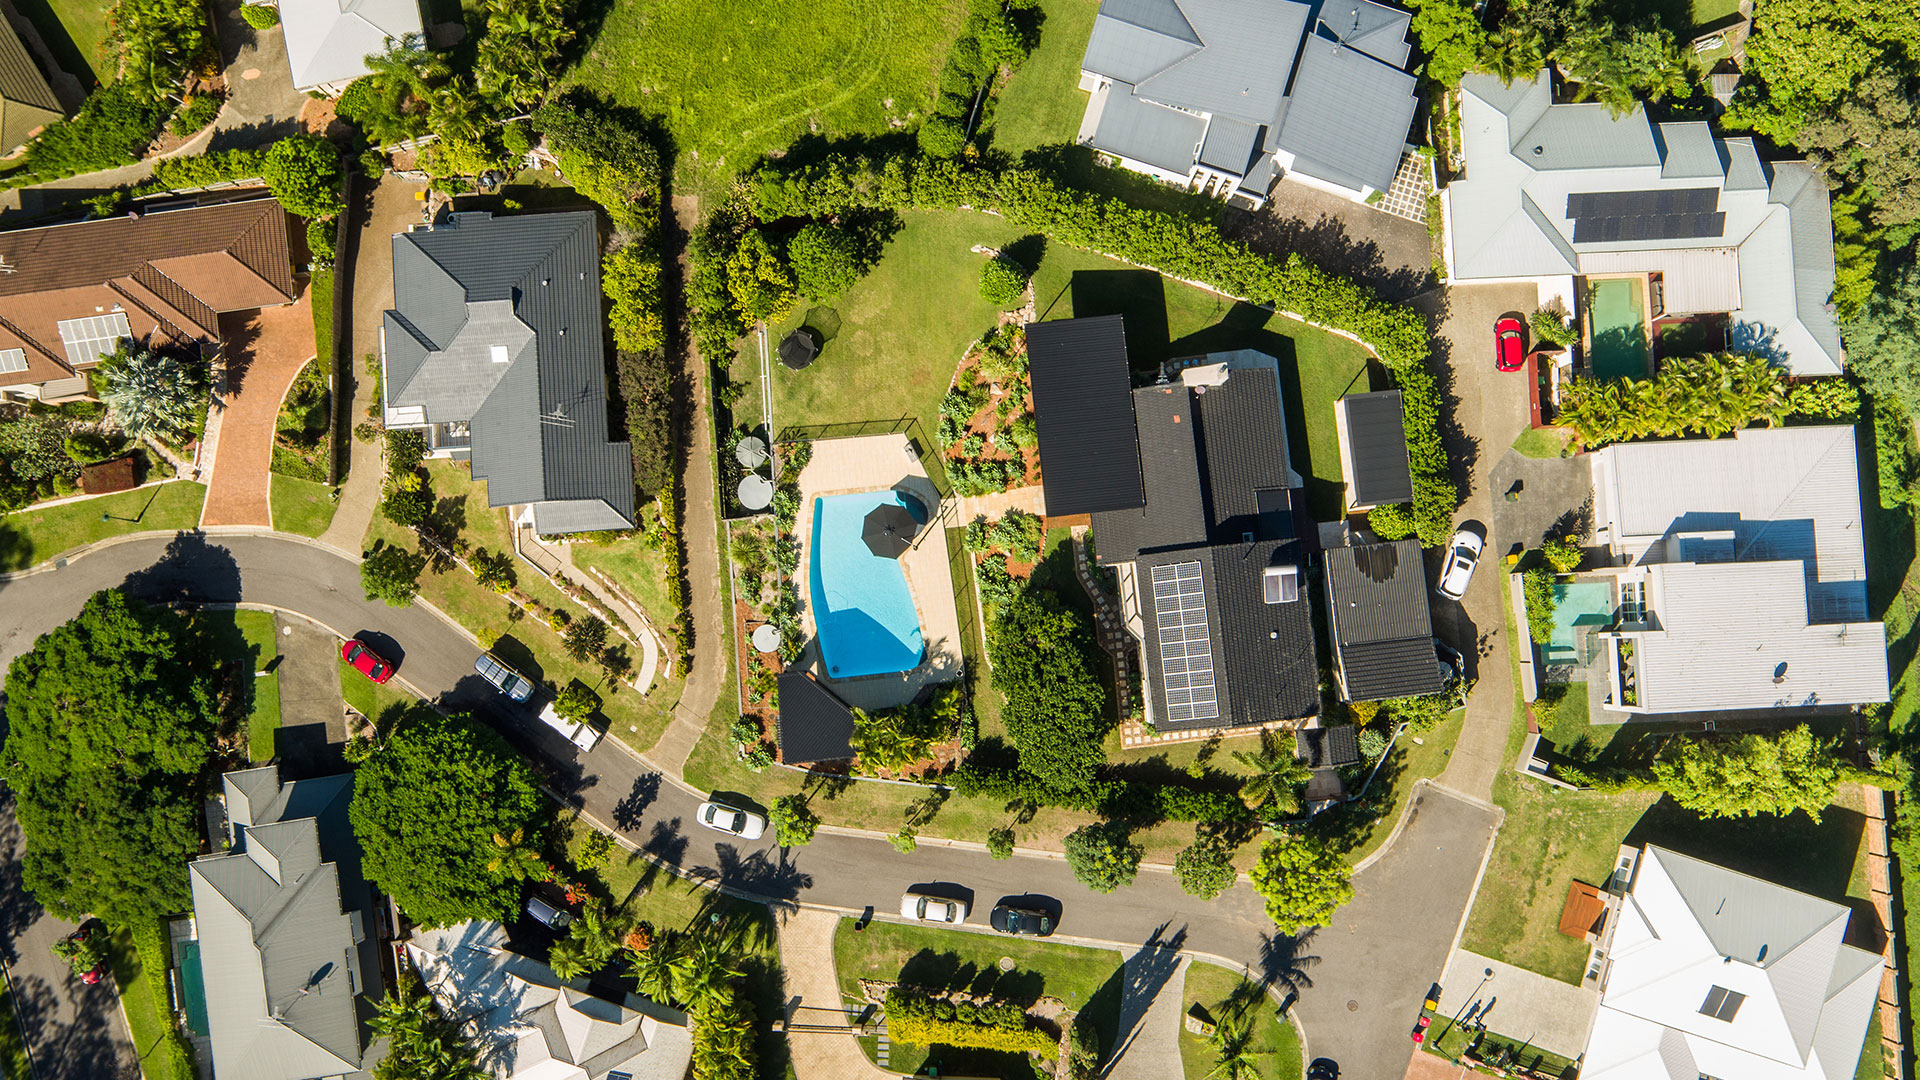 Aerial drone photography for real estate sales.